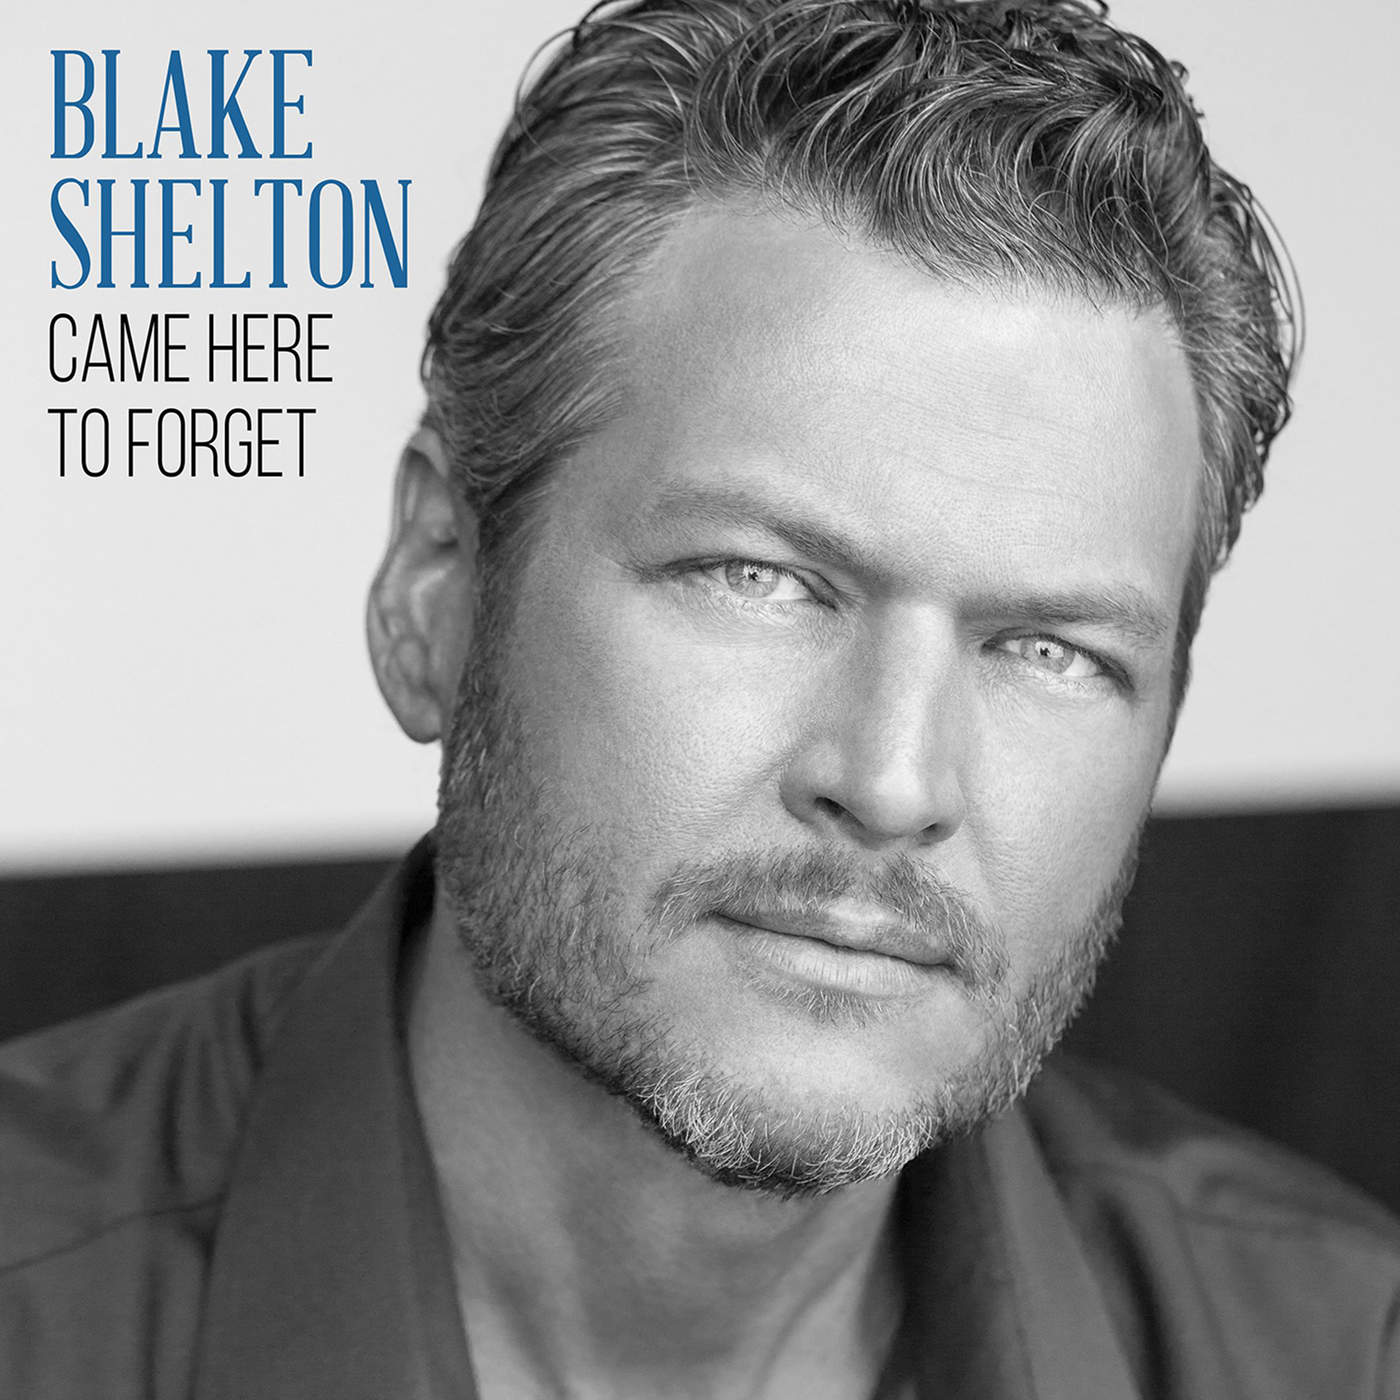 Blake Shelton - Came Here to Forget - Single Cover